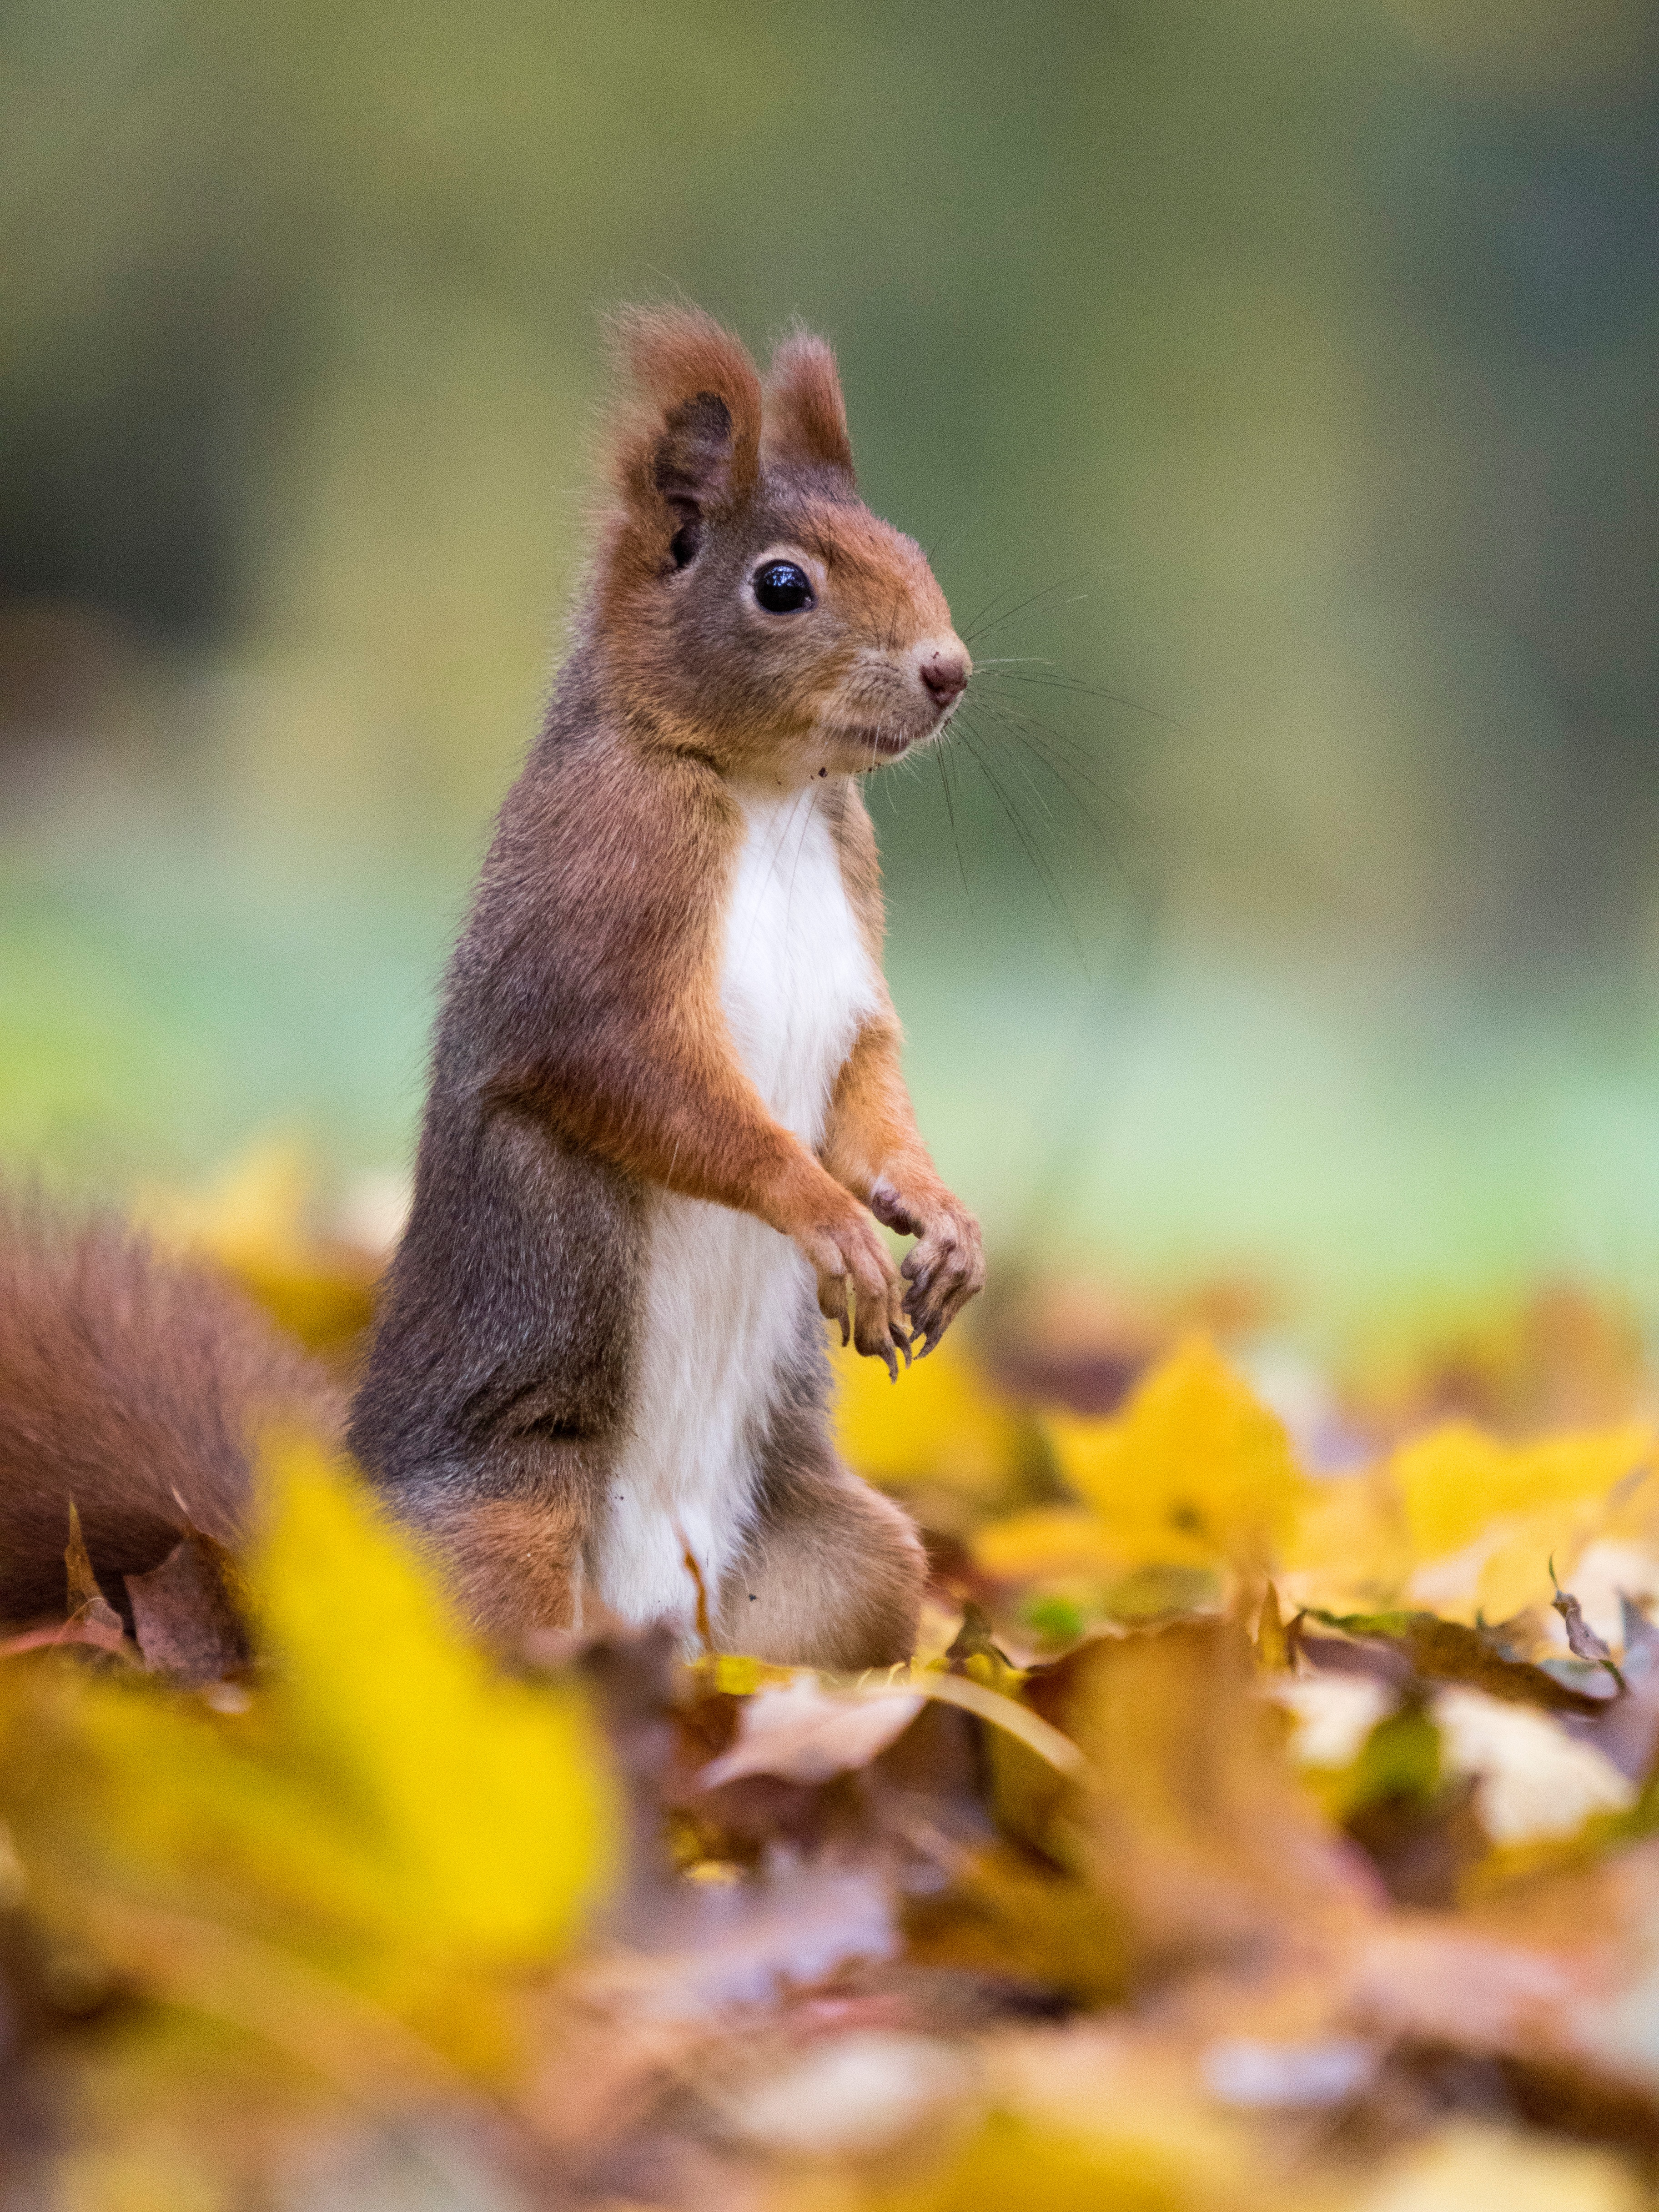 111174 download wallpaper Animals, Squirrel, Nice, Sweetheart, Funny, Animal, Leaves screensavers and pictures for free